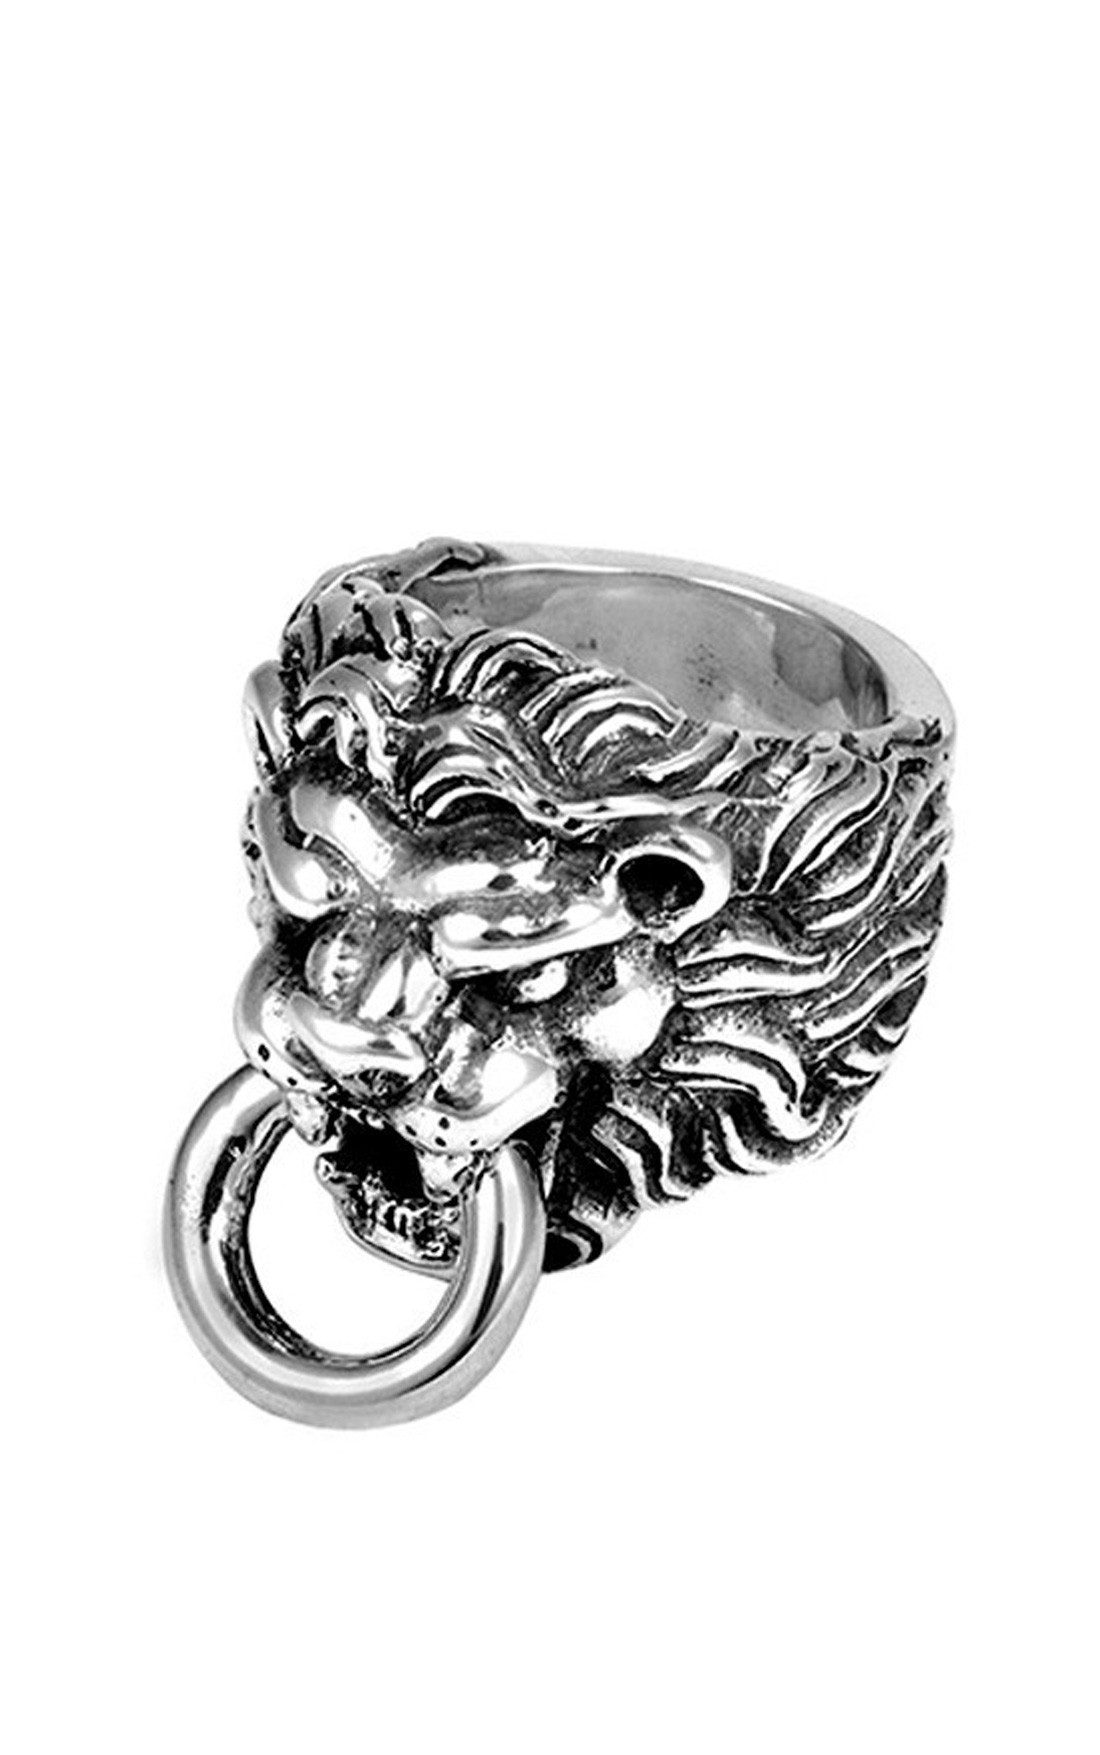 King Baby - Lion's Head Ring (K20-5050)